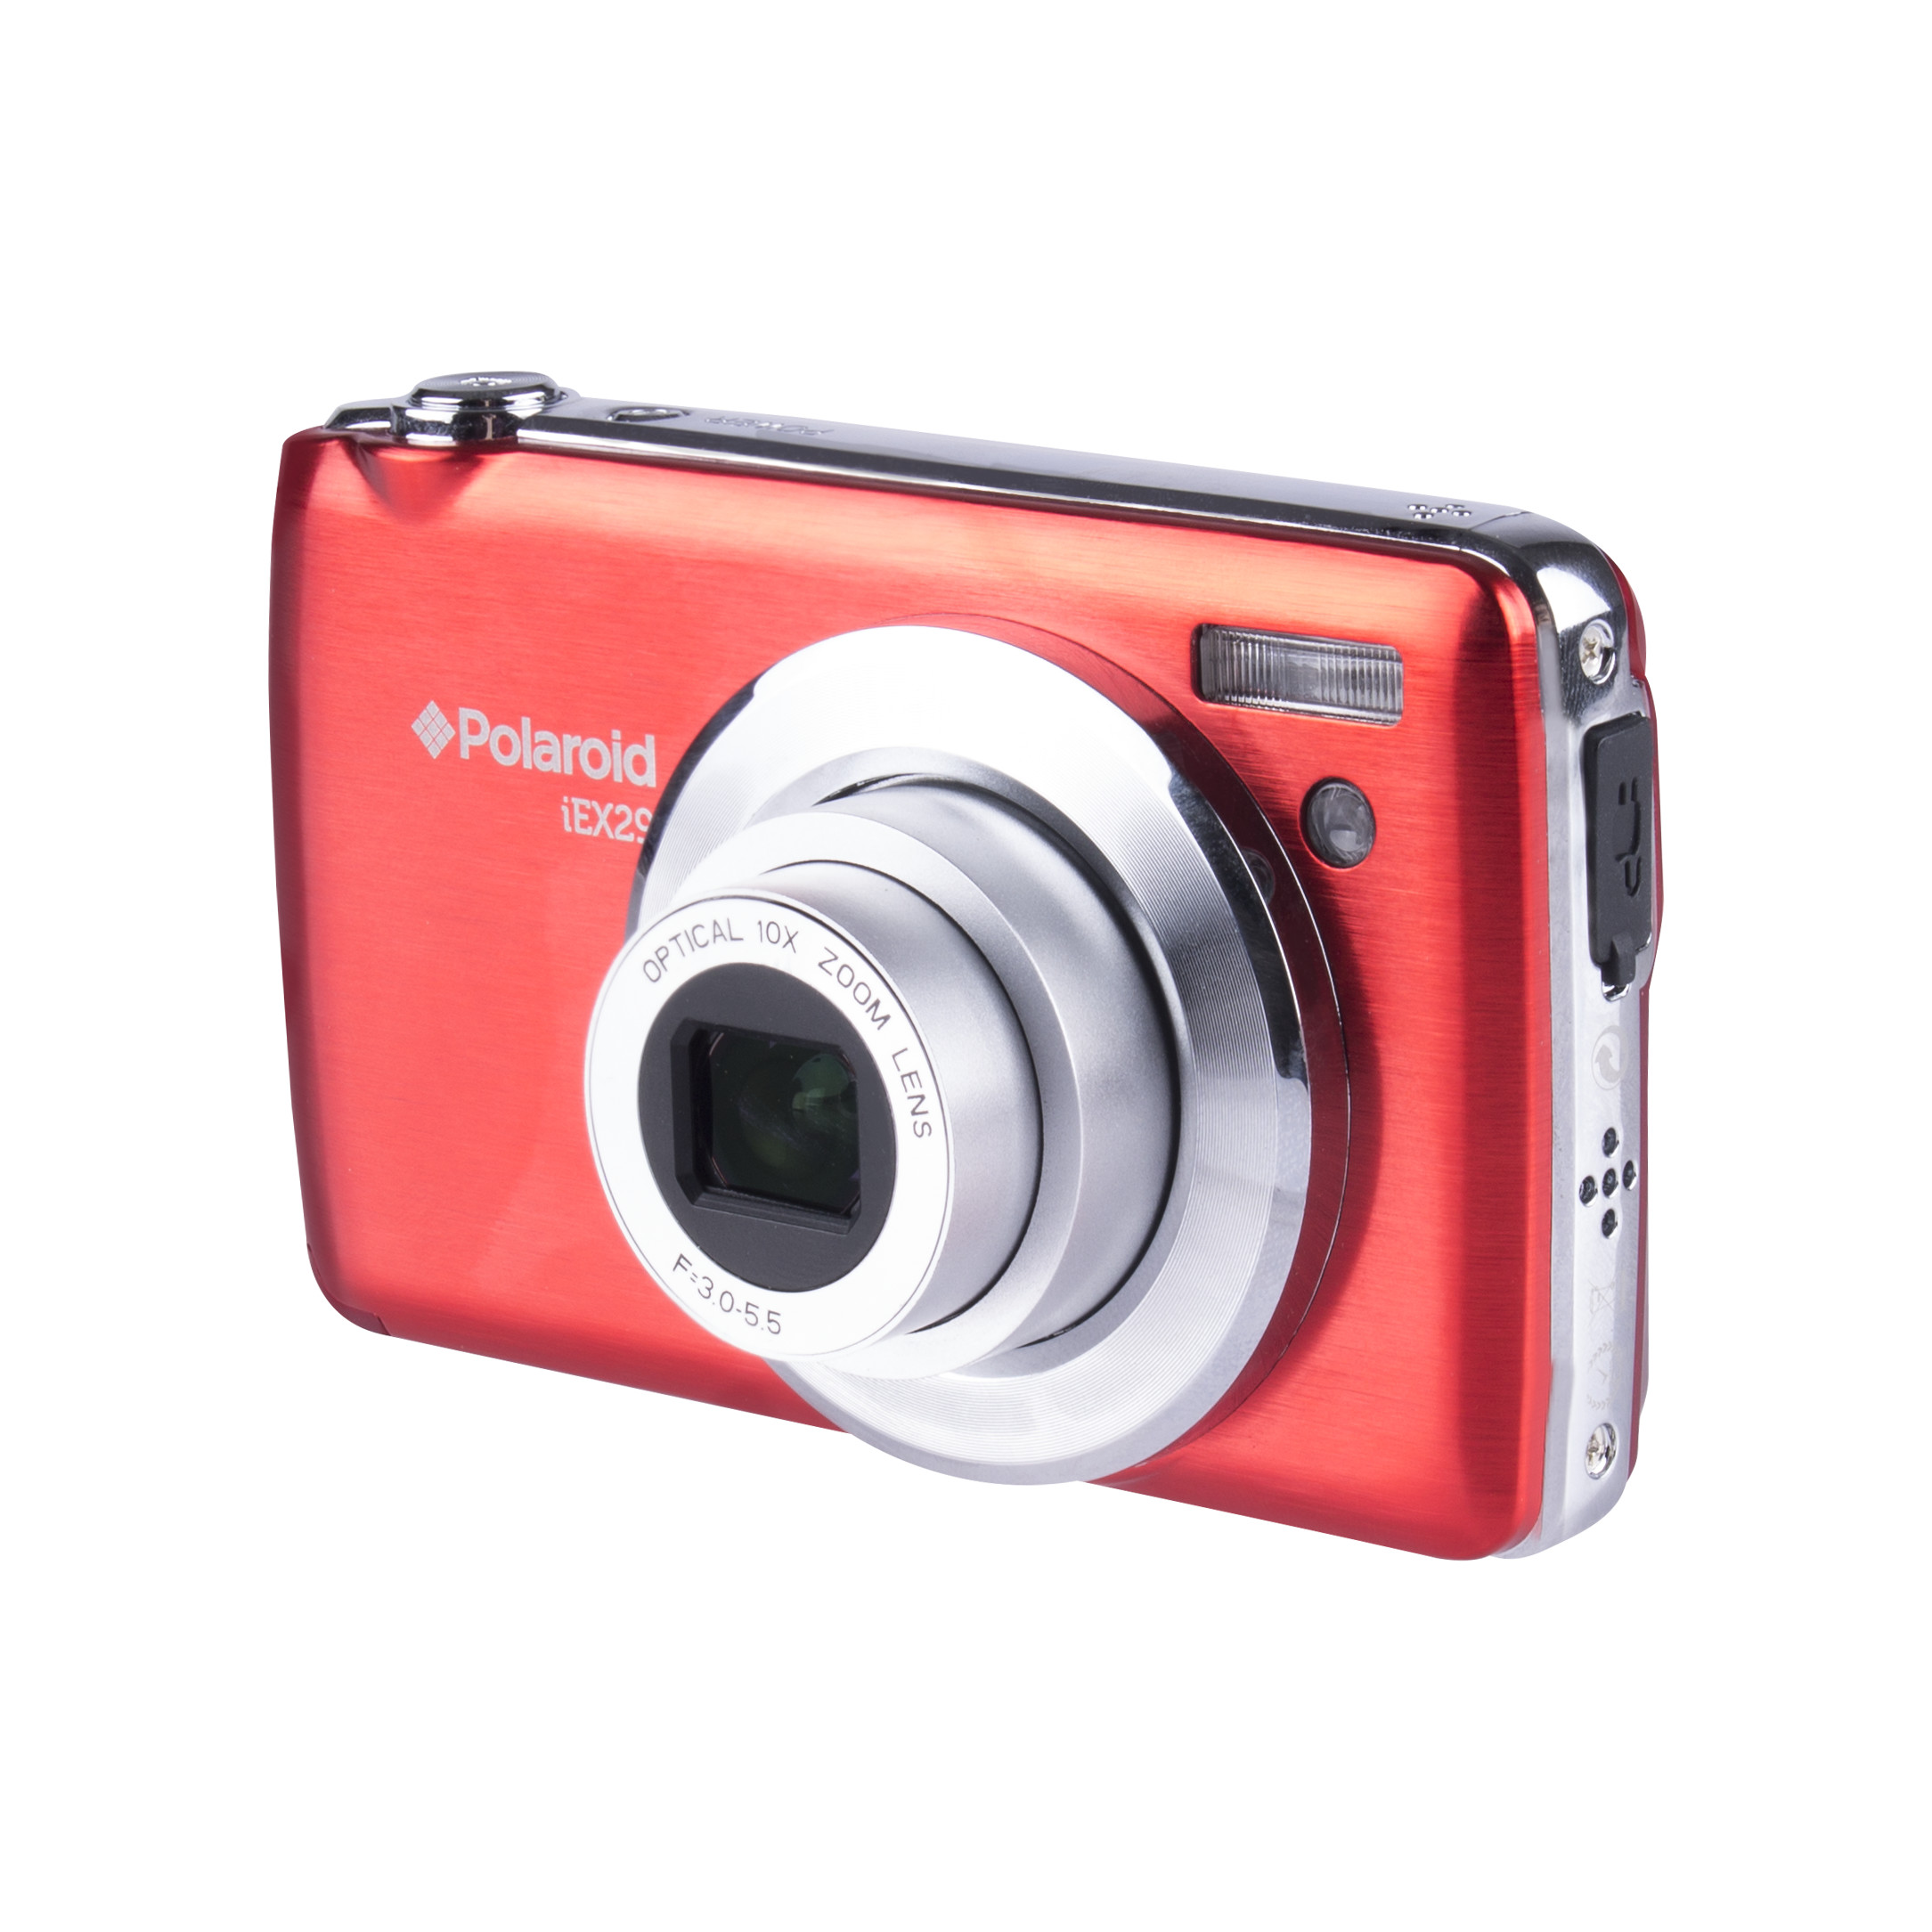 Polaroid 18 Megapixel Optical Zoom Digital Camera